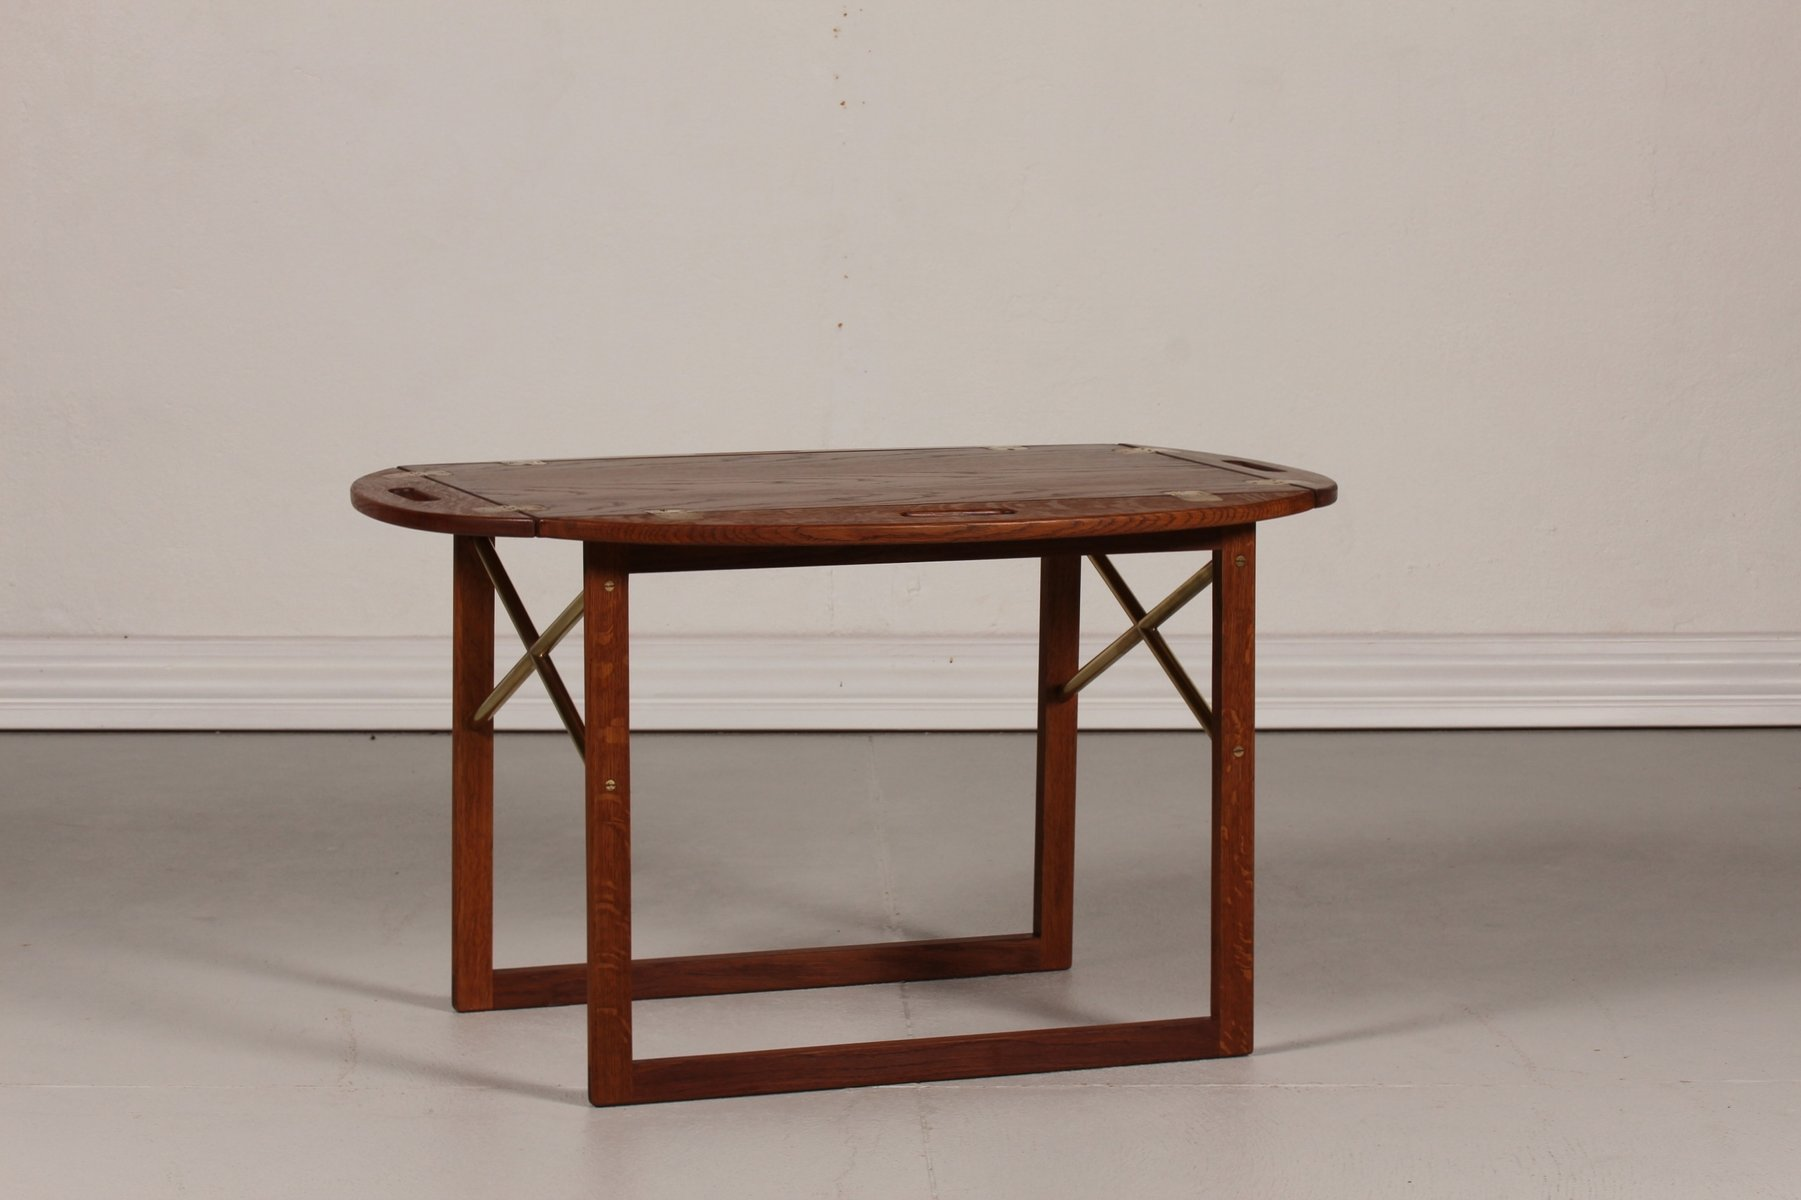 Danish Oak Tray Coffee Table By Svend Langkilde, 1960s